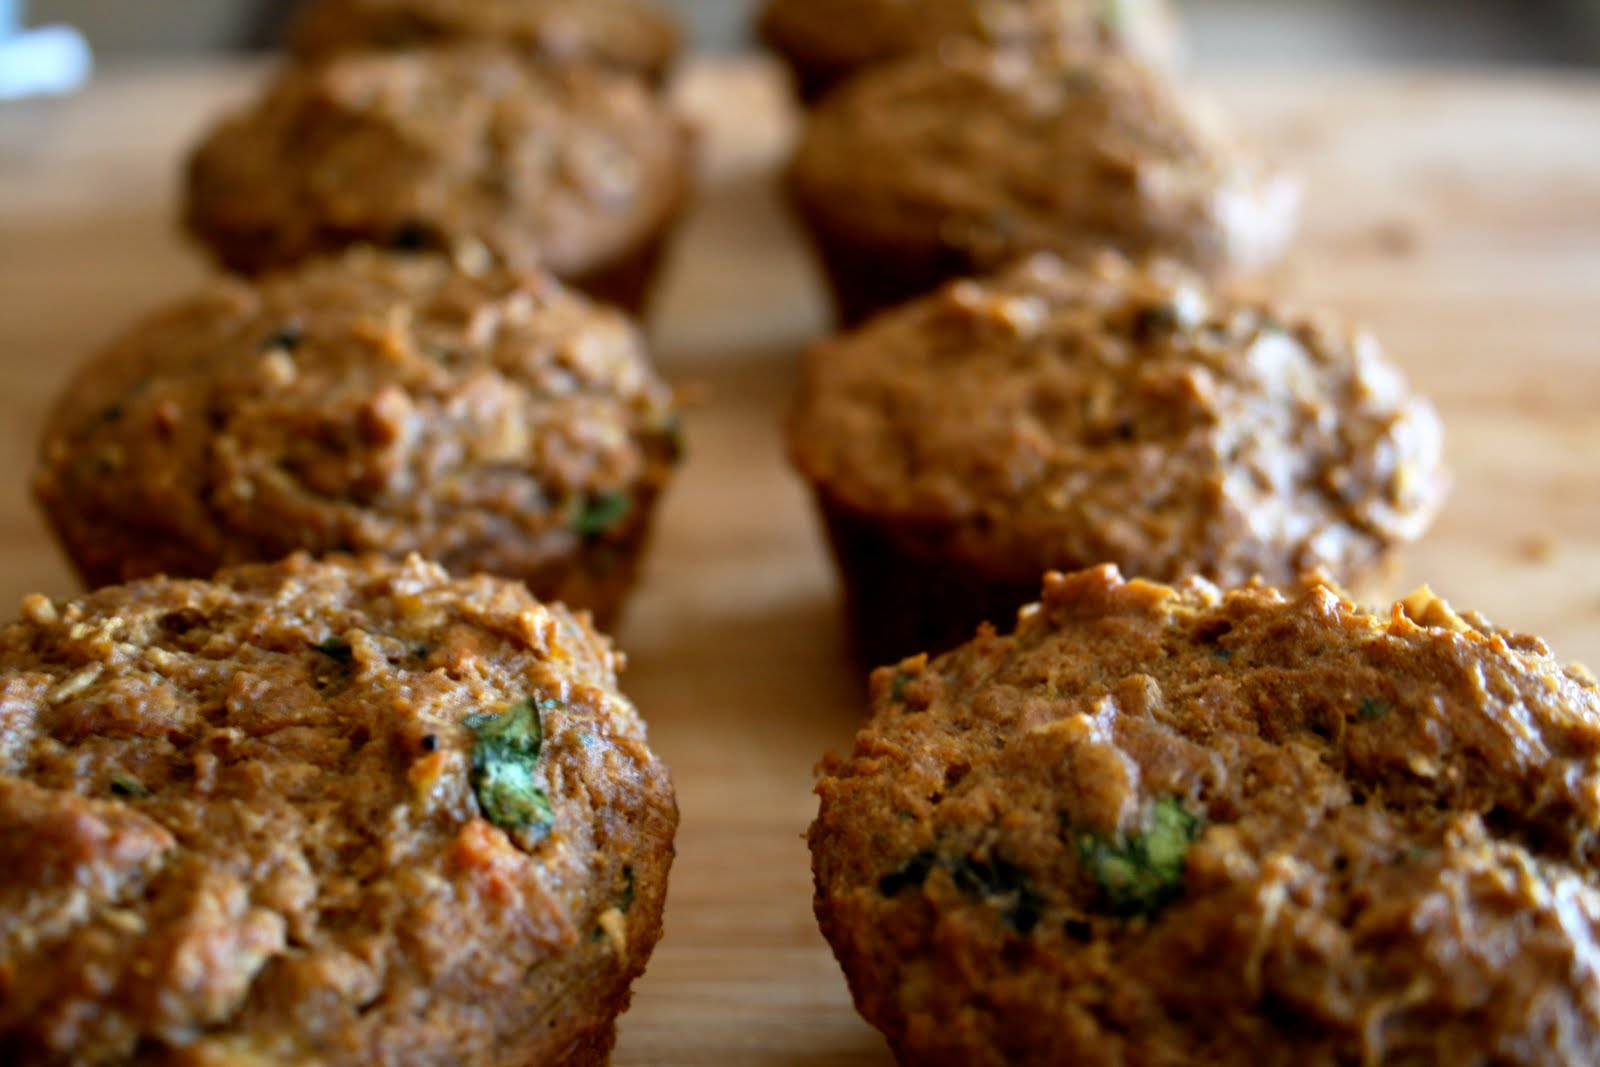 ... At First Bite....Eating for a healthier life: Morning Glory Muffins